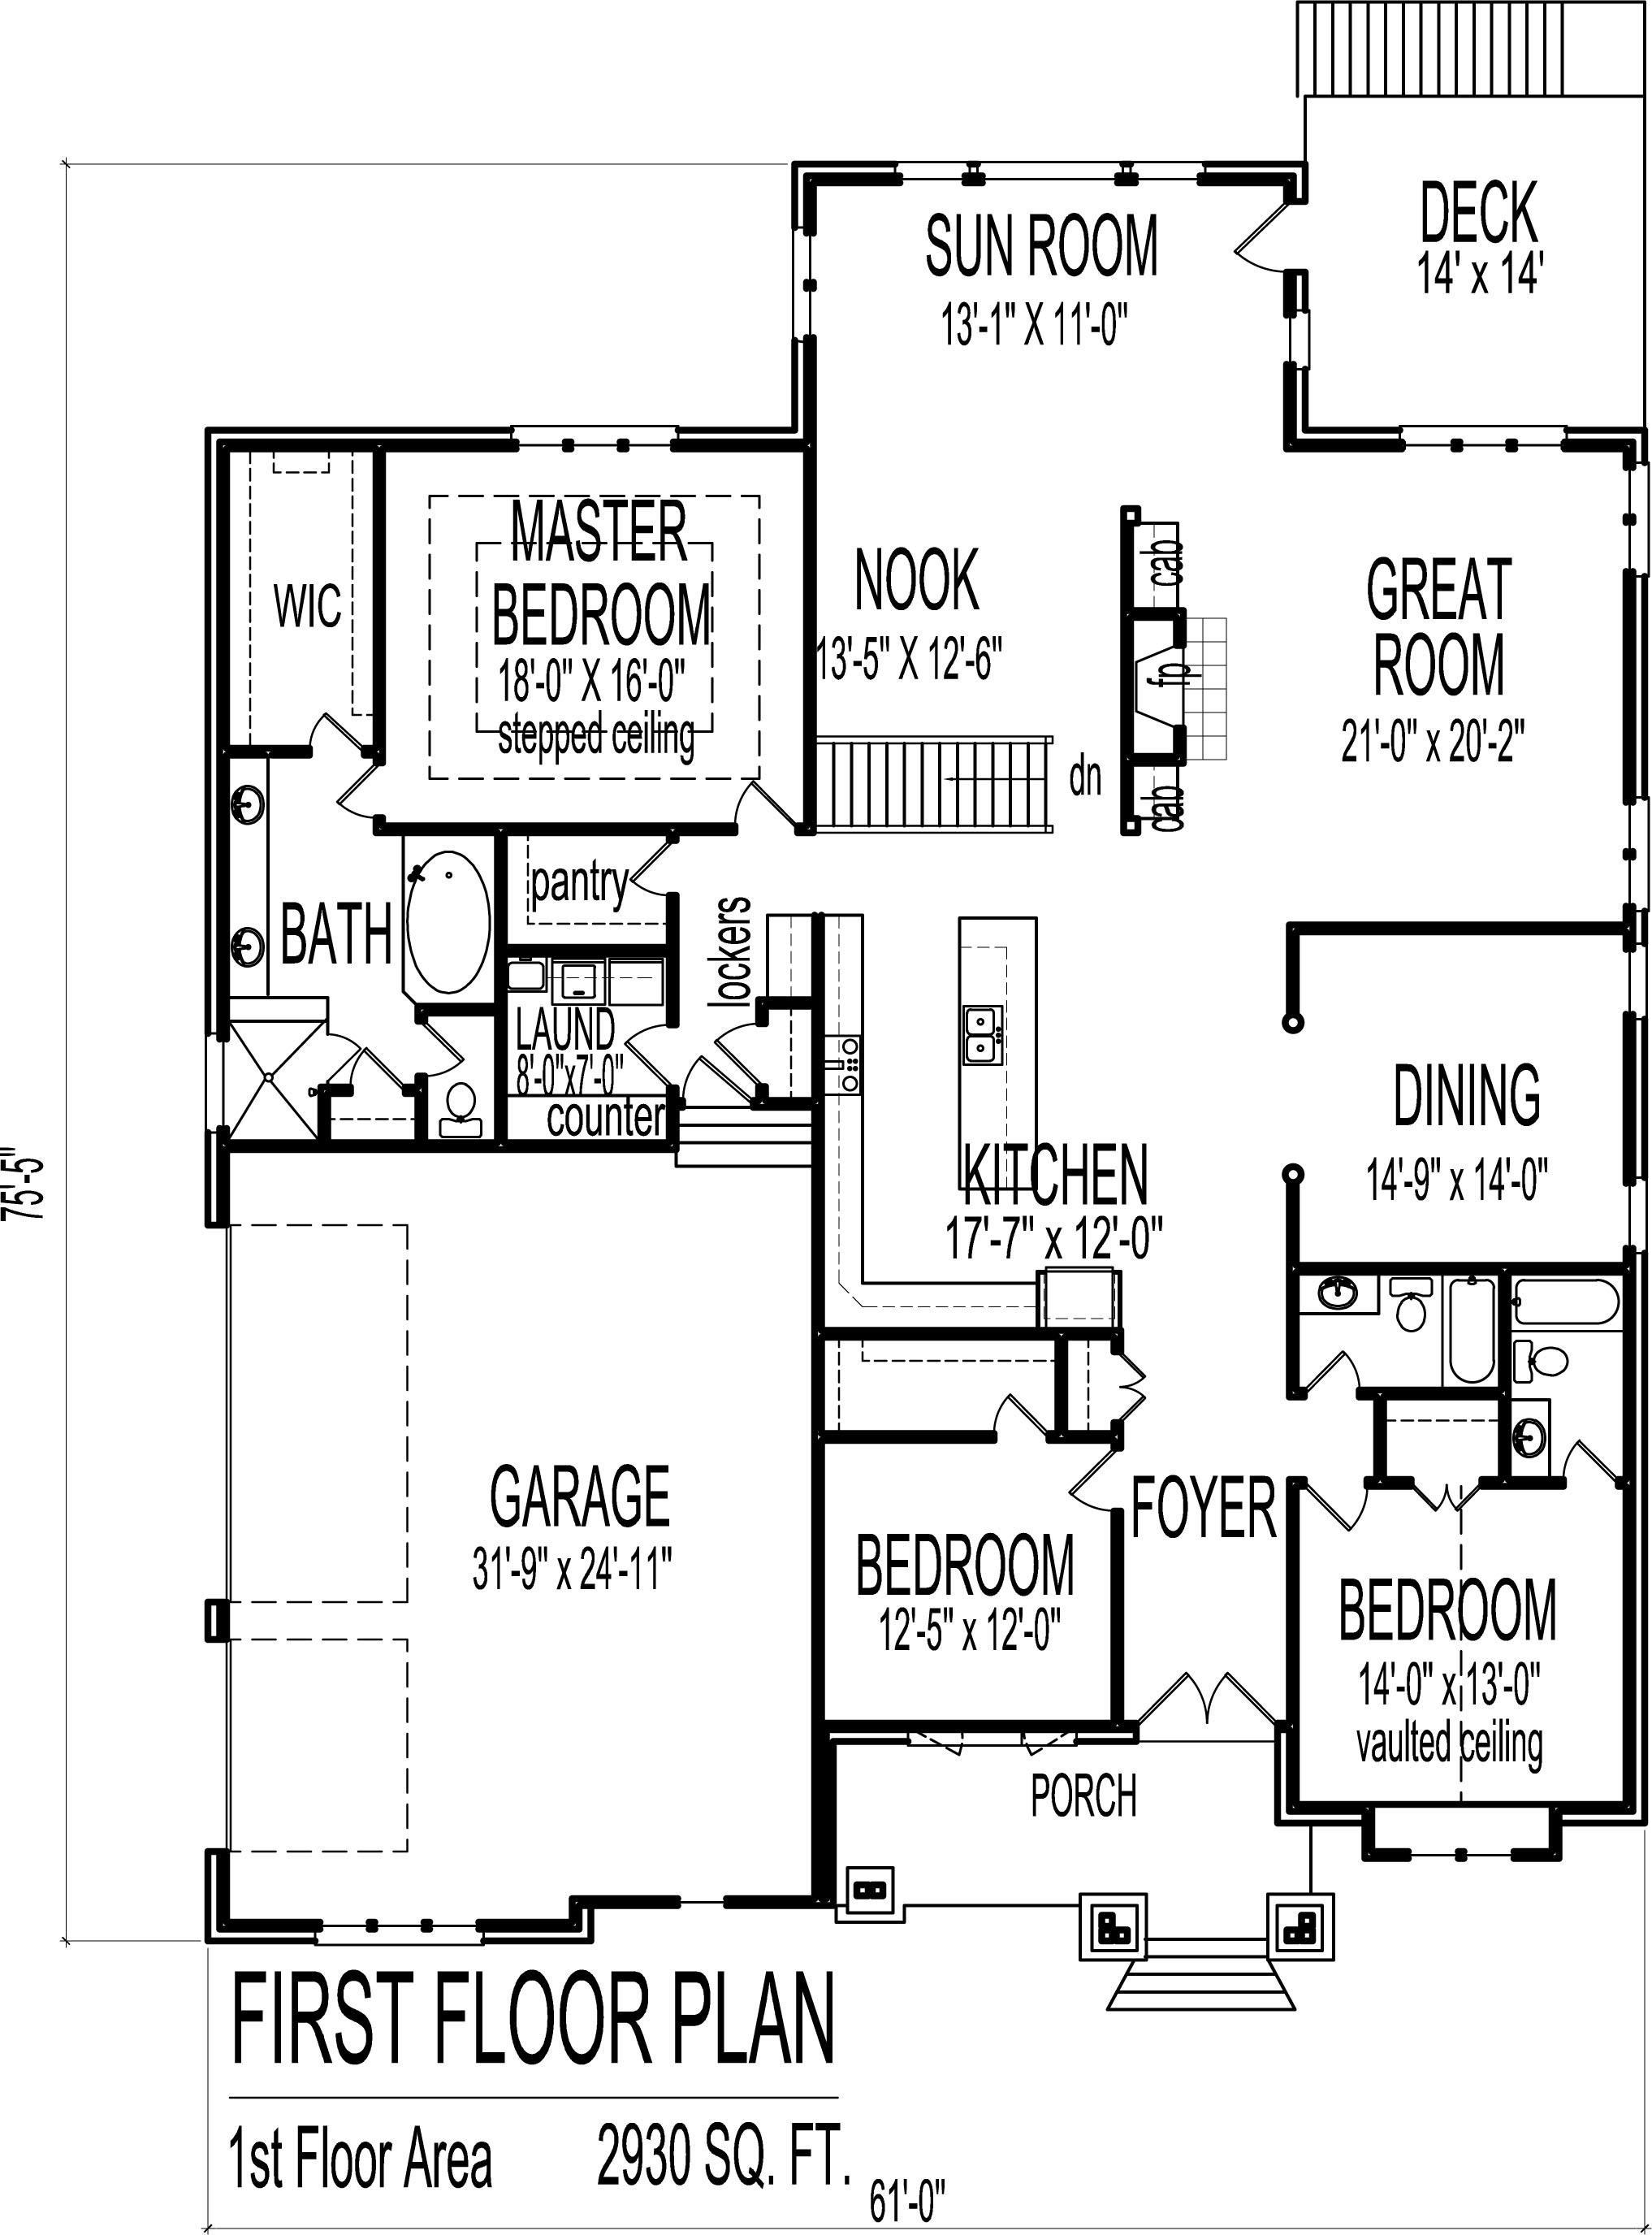 How to Draw House Plans Free Unique Autocad House Drawing at Getdrawings